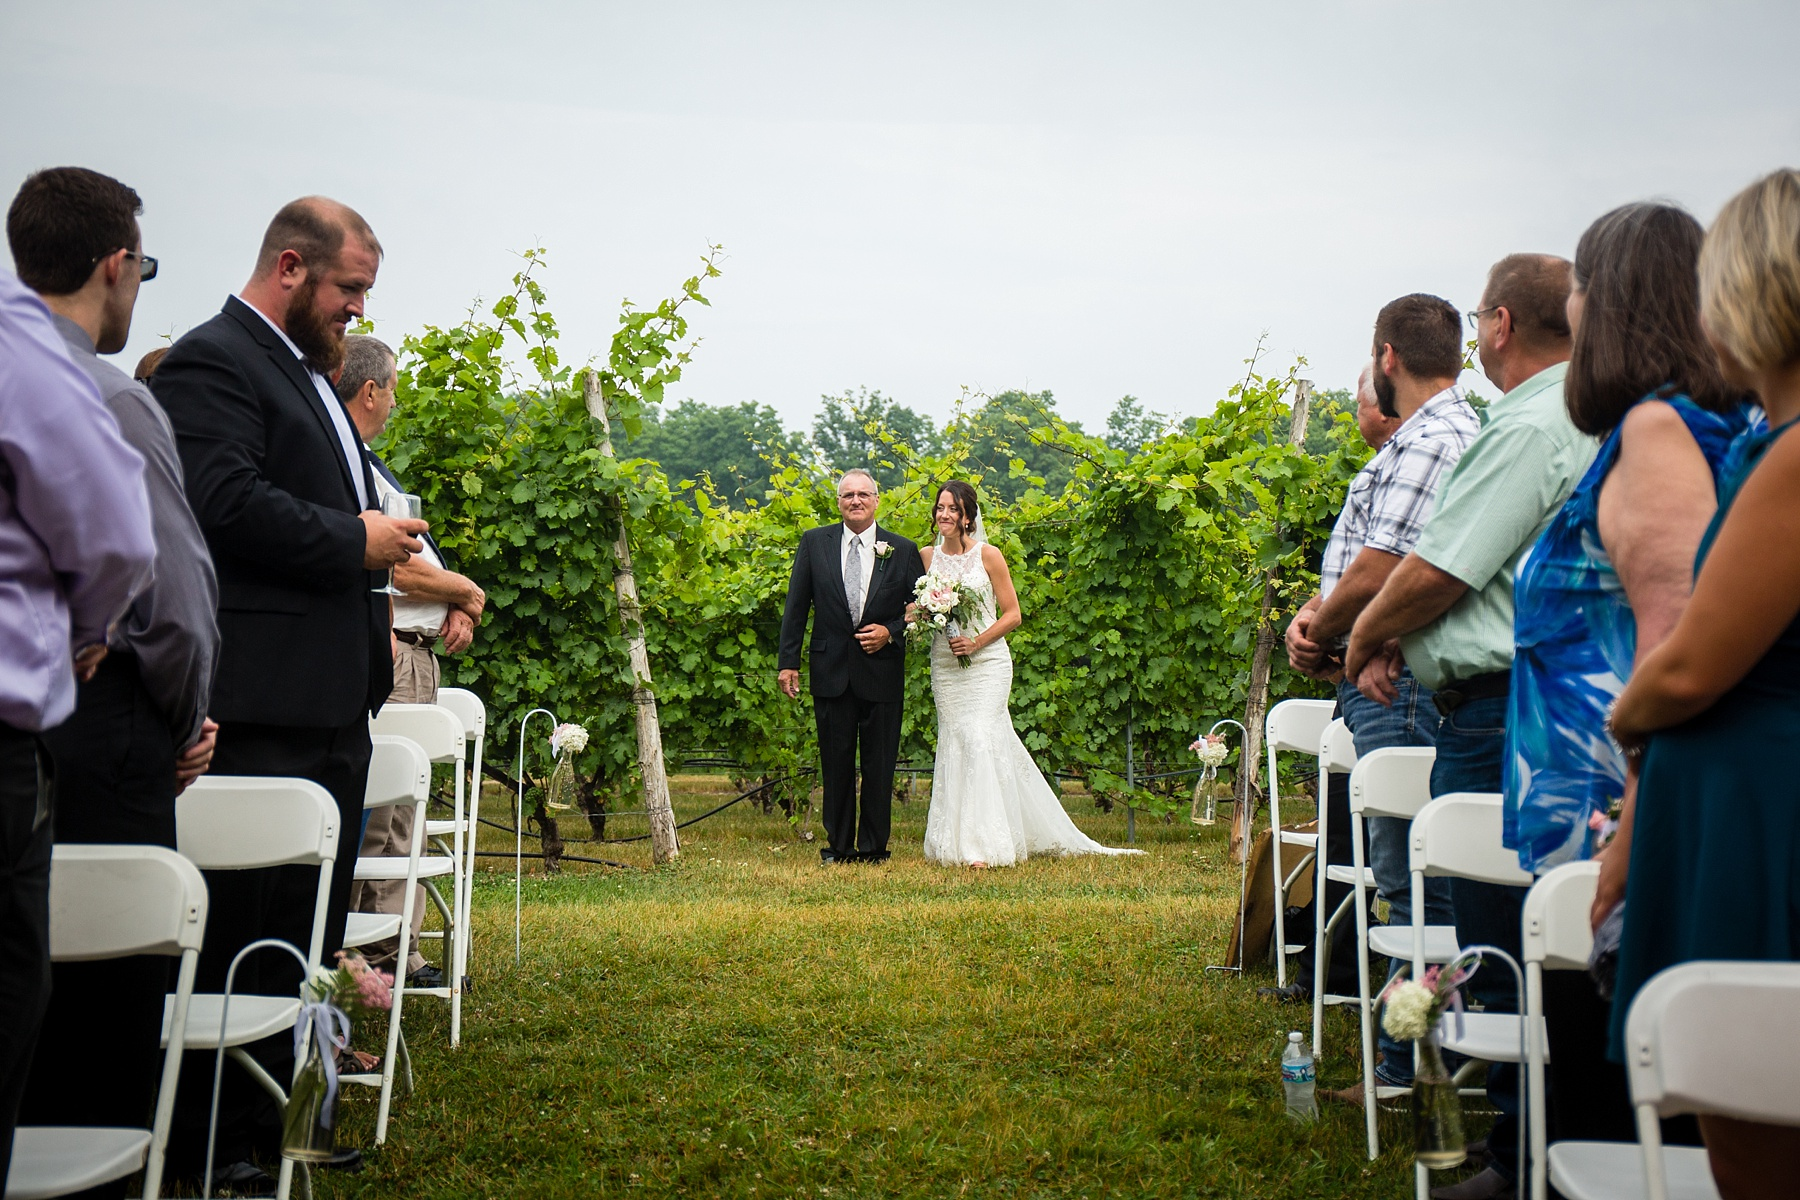 Brandon_Shafer_Photography_Elizabeth_Scott_Traverse_City_Wedding_0028.jpg